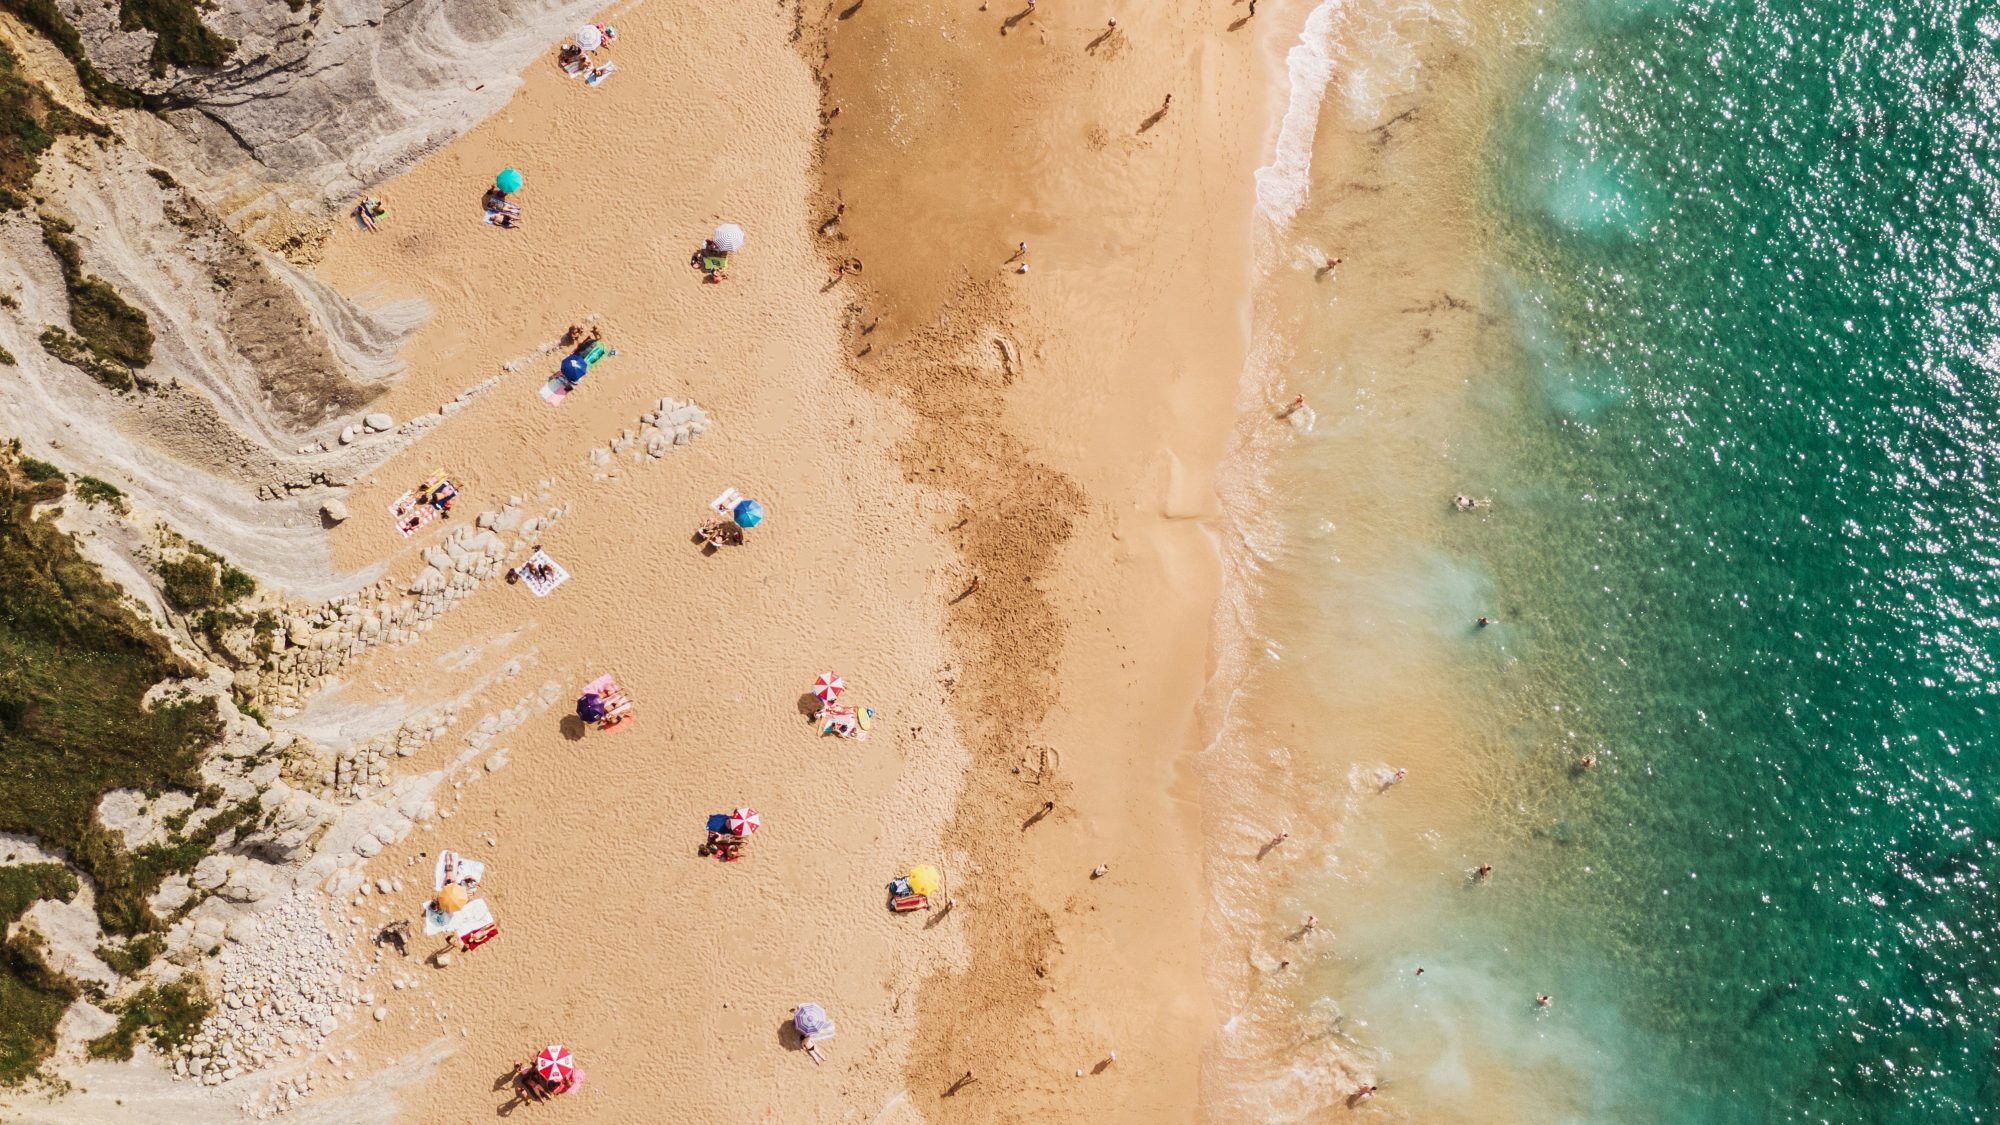 aerial view of people social distancing on the beach